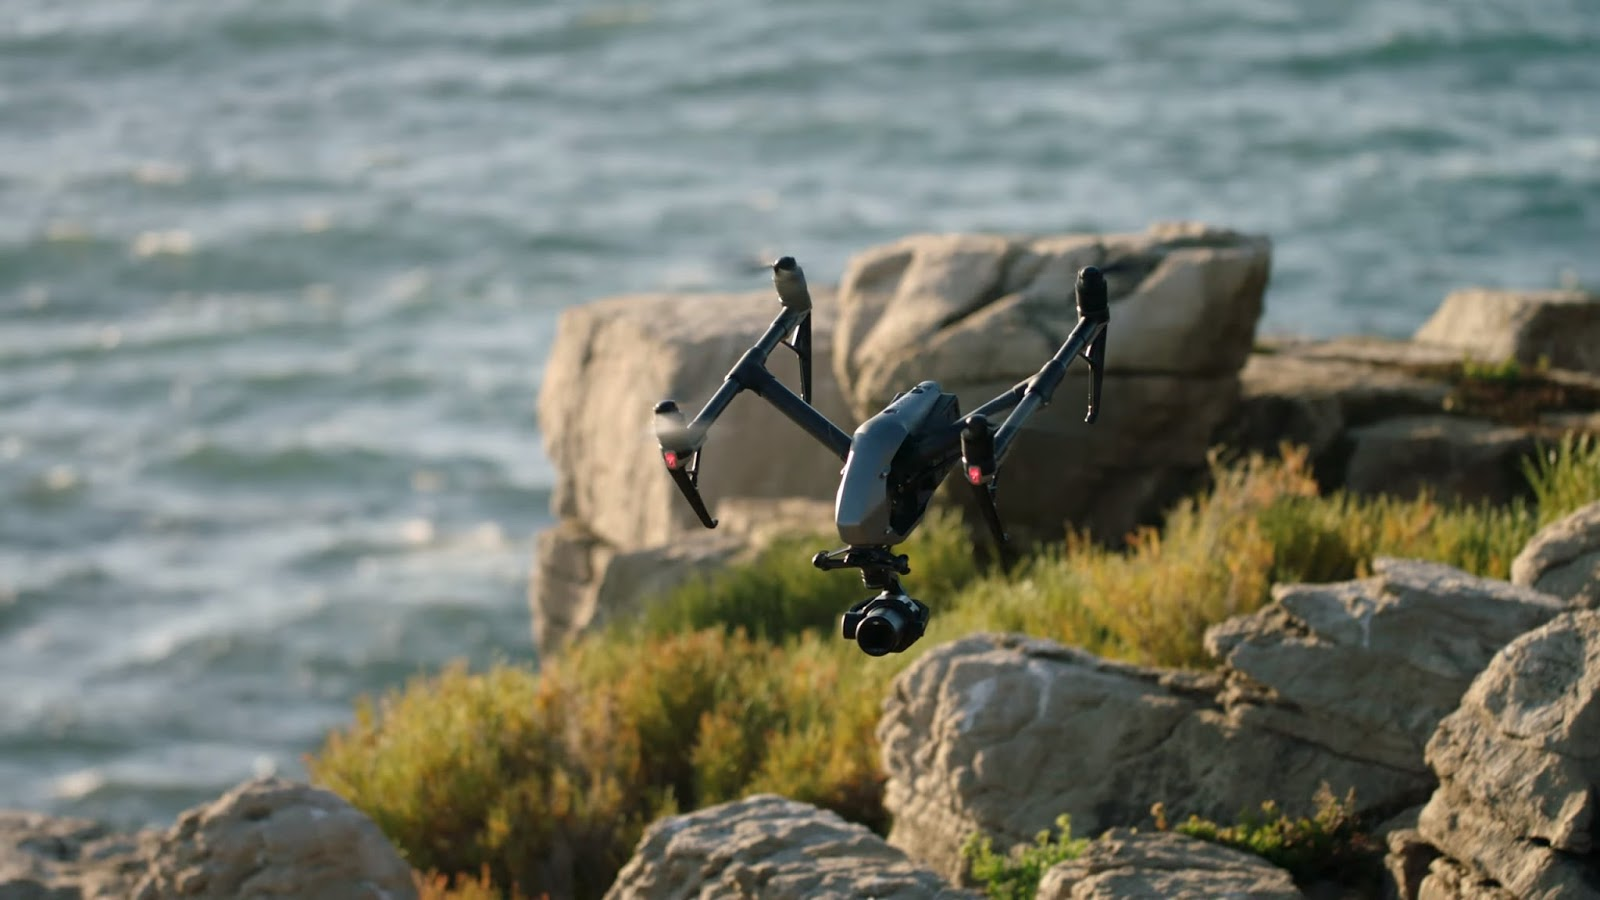 Riders: BTS with the DJI Zenmuse X7